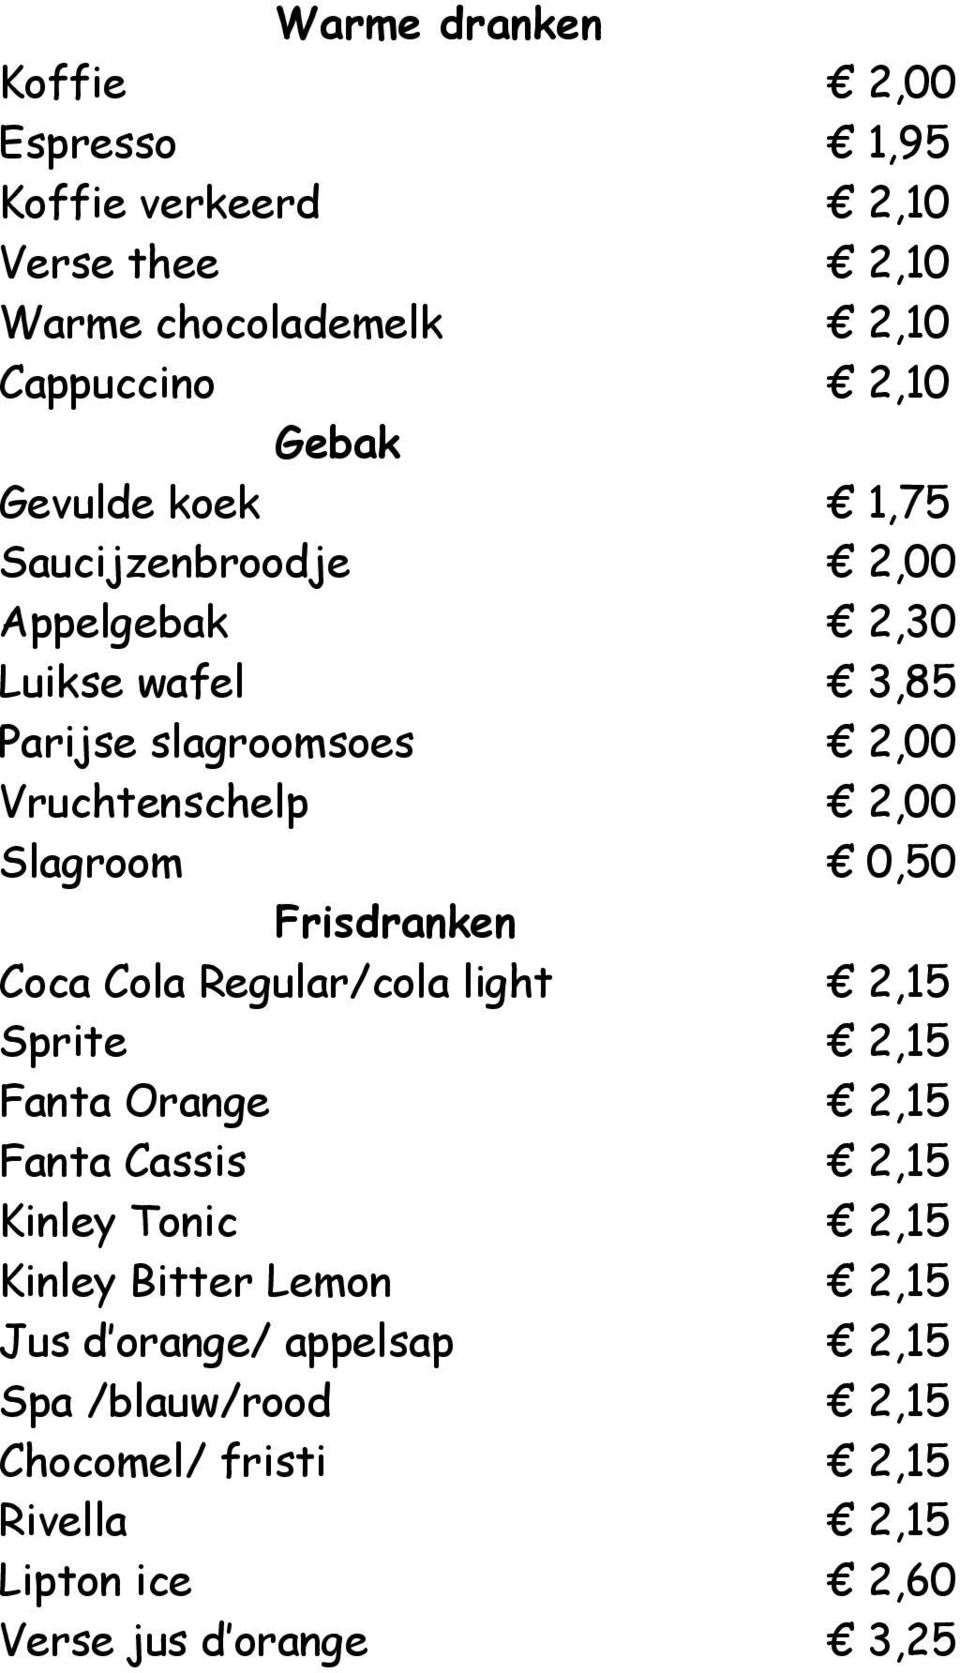 0,50 Frisdranken Coca Cola Regular/cola light 2,15 Sprite 2,15 Fanta Orange 2,15 Fanta Cassis 2,15 Kinley Tonic 2,15 Kinley